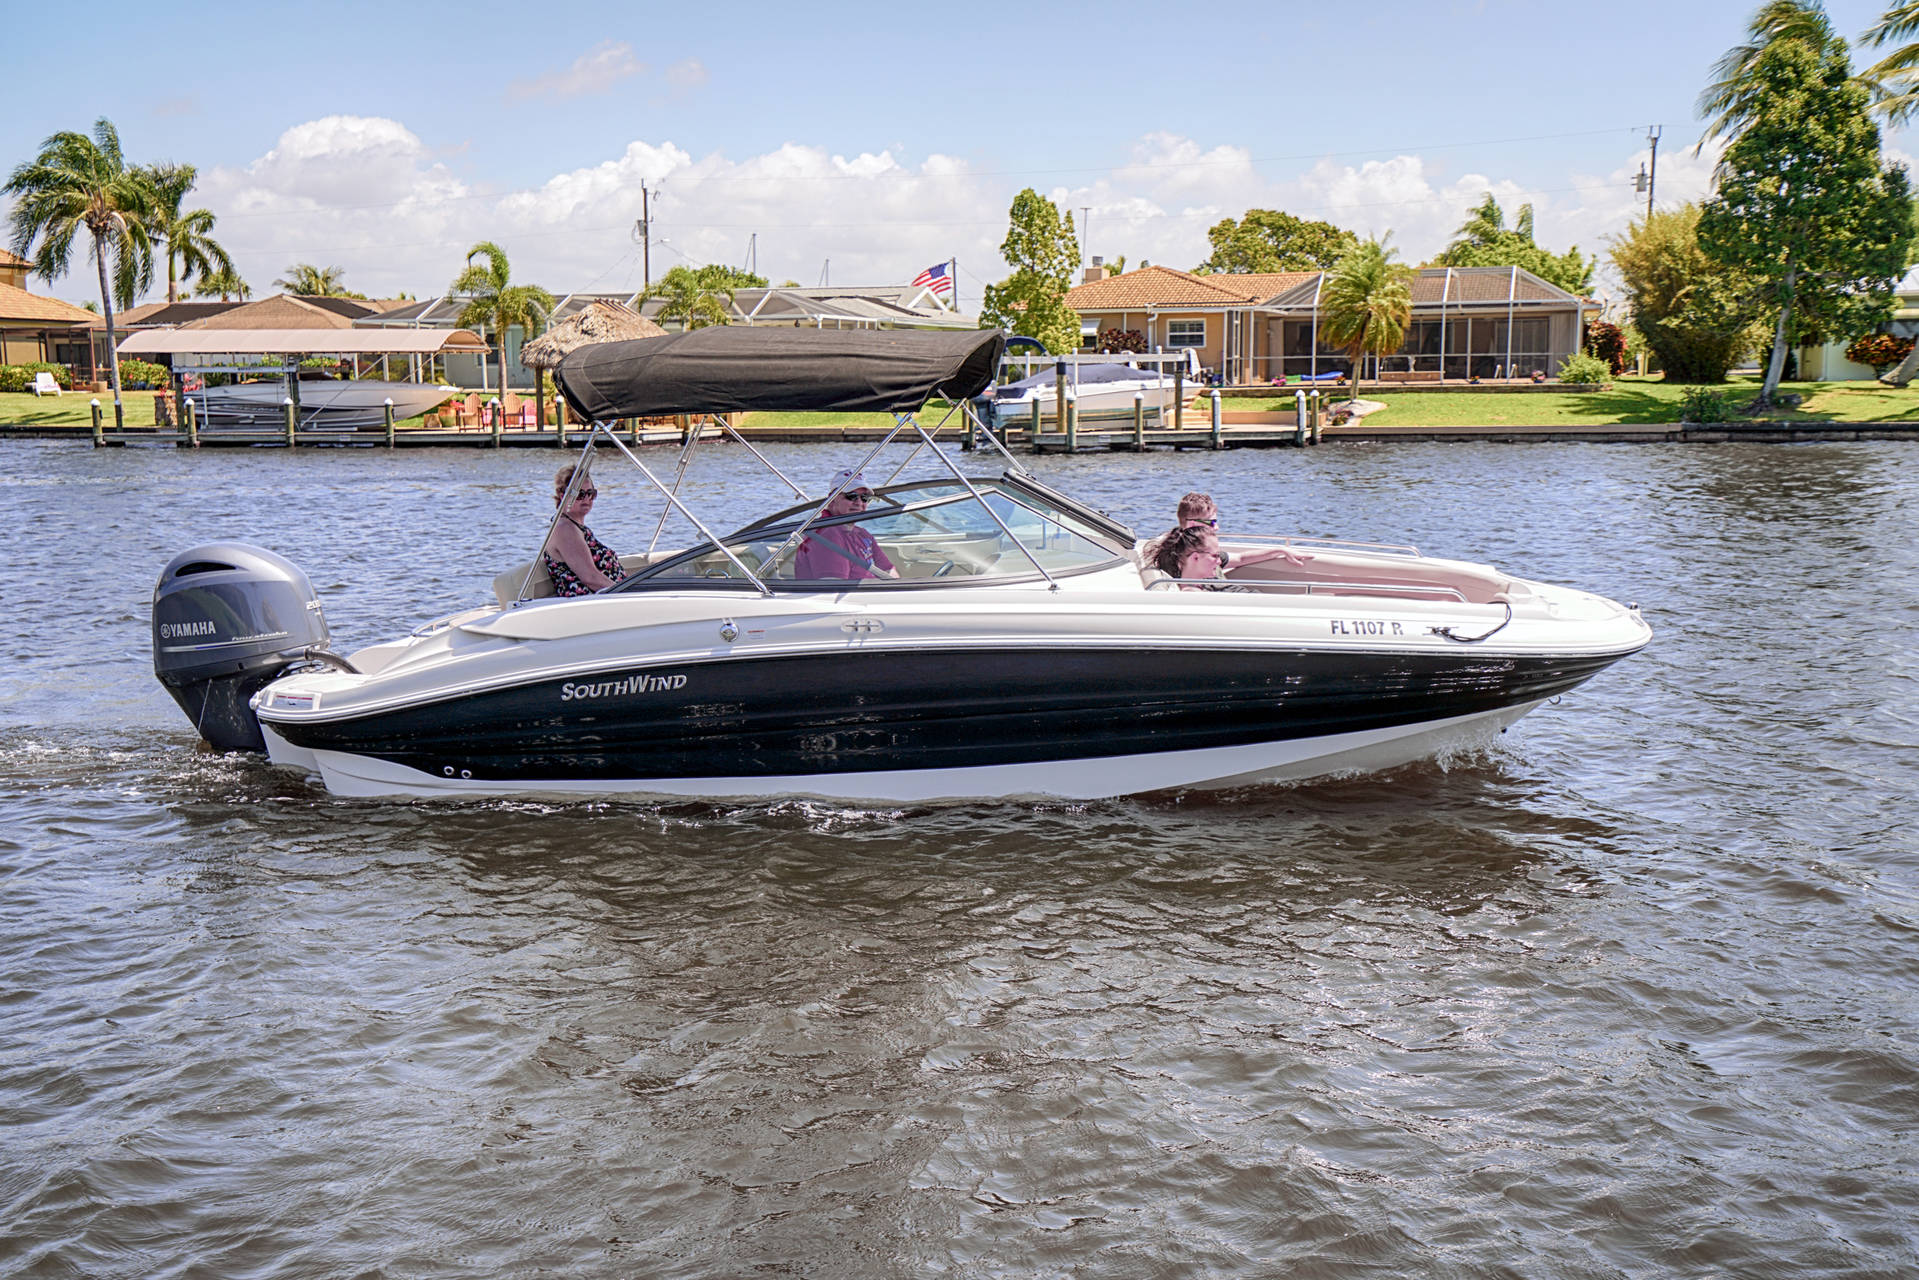 Optional mit 24 Southwind in Florida